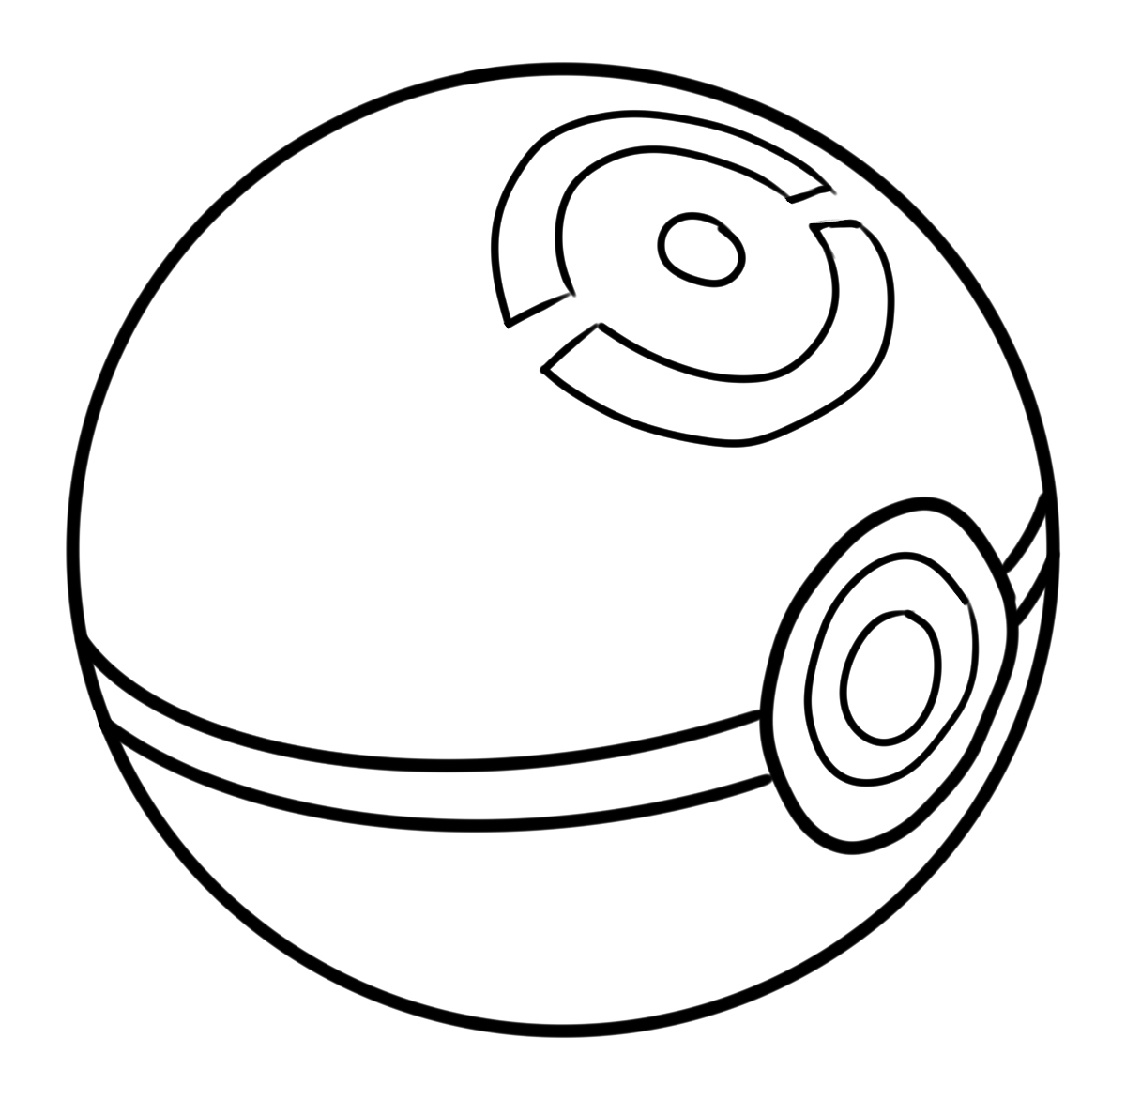 Pokeball Coloring Pages To Print